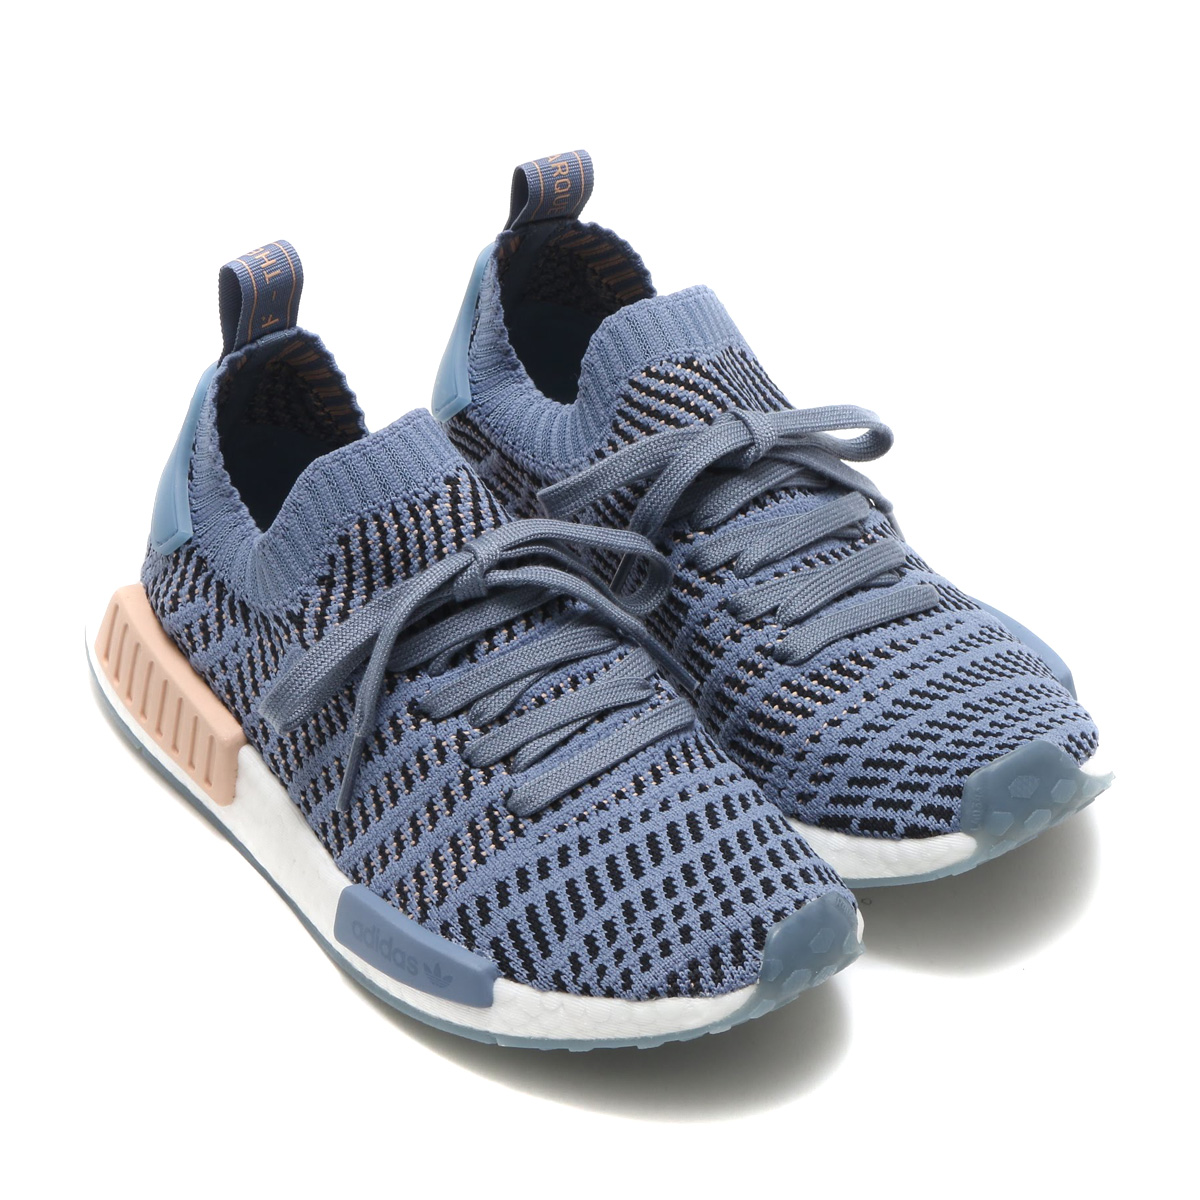 new product 693ab ddf69 adidas Originals NMD_R1 STLT PK W (Adidas originals N M D R1 STLT PK W)  Steel/Ash Pearl/Running White 18SS-I